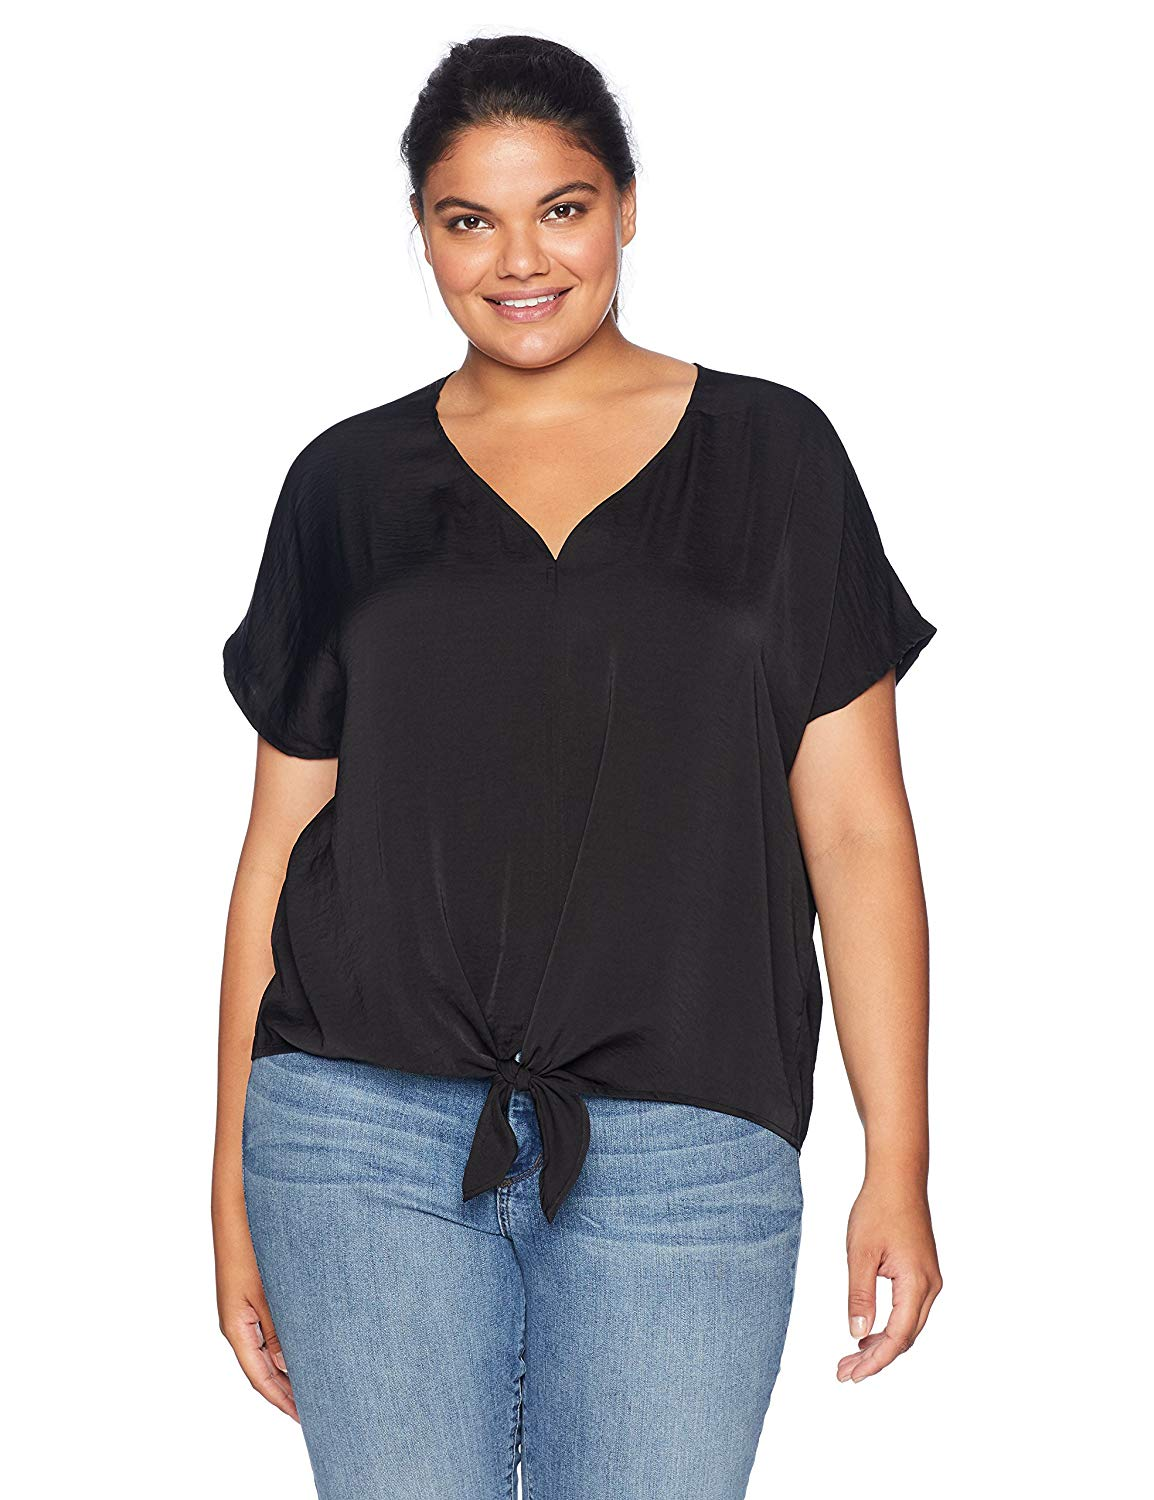 ddd981d9a8b74 Get Quotations · Lucky Brand Women's Size Plus Tie Front Top